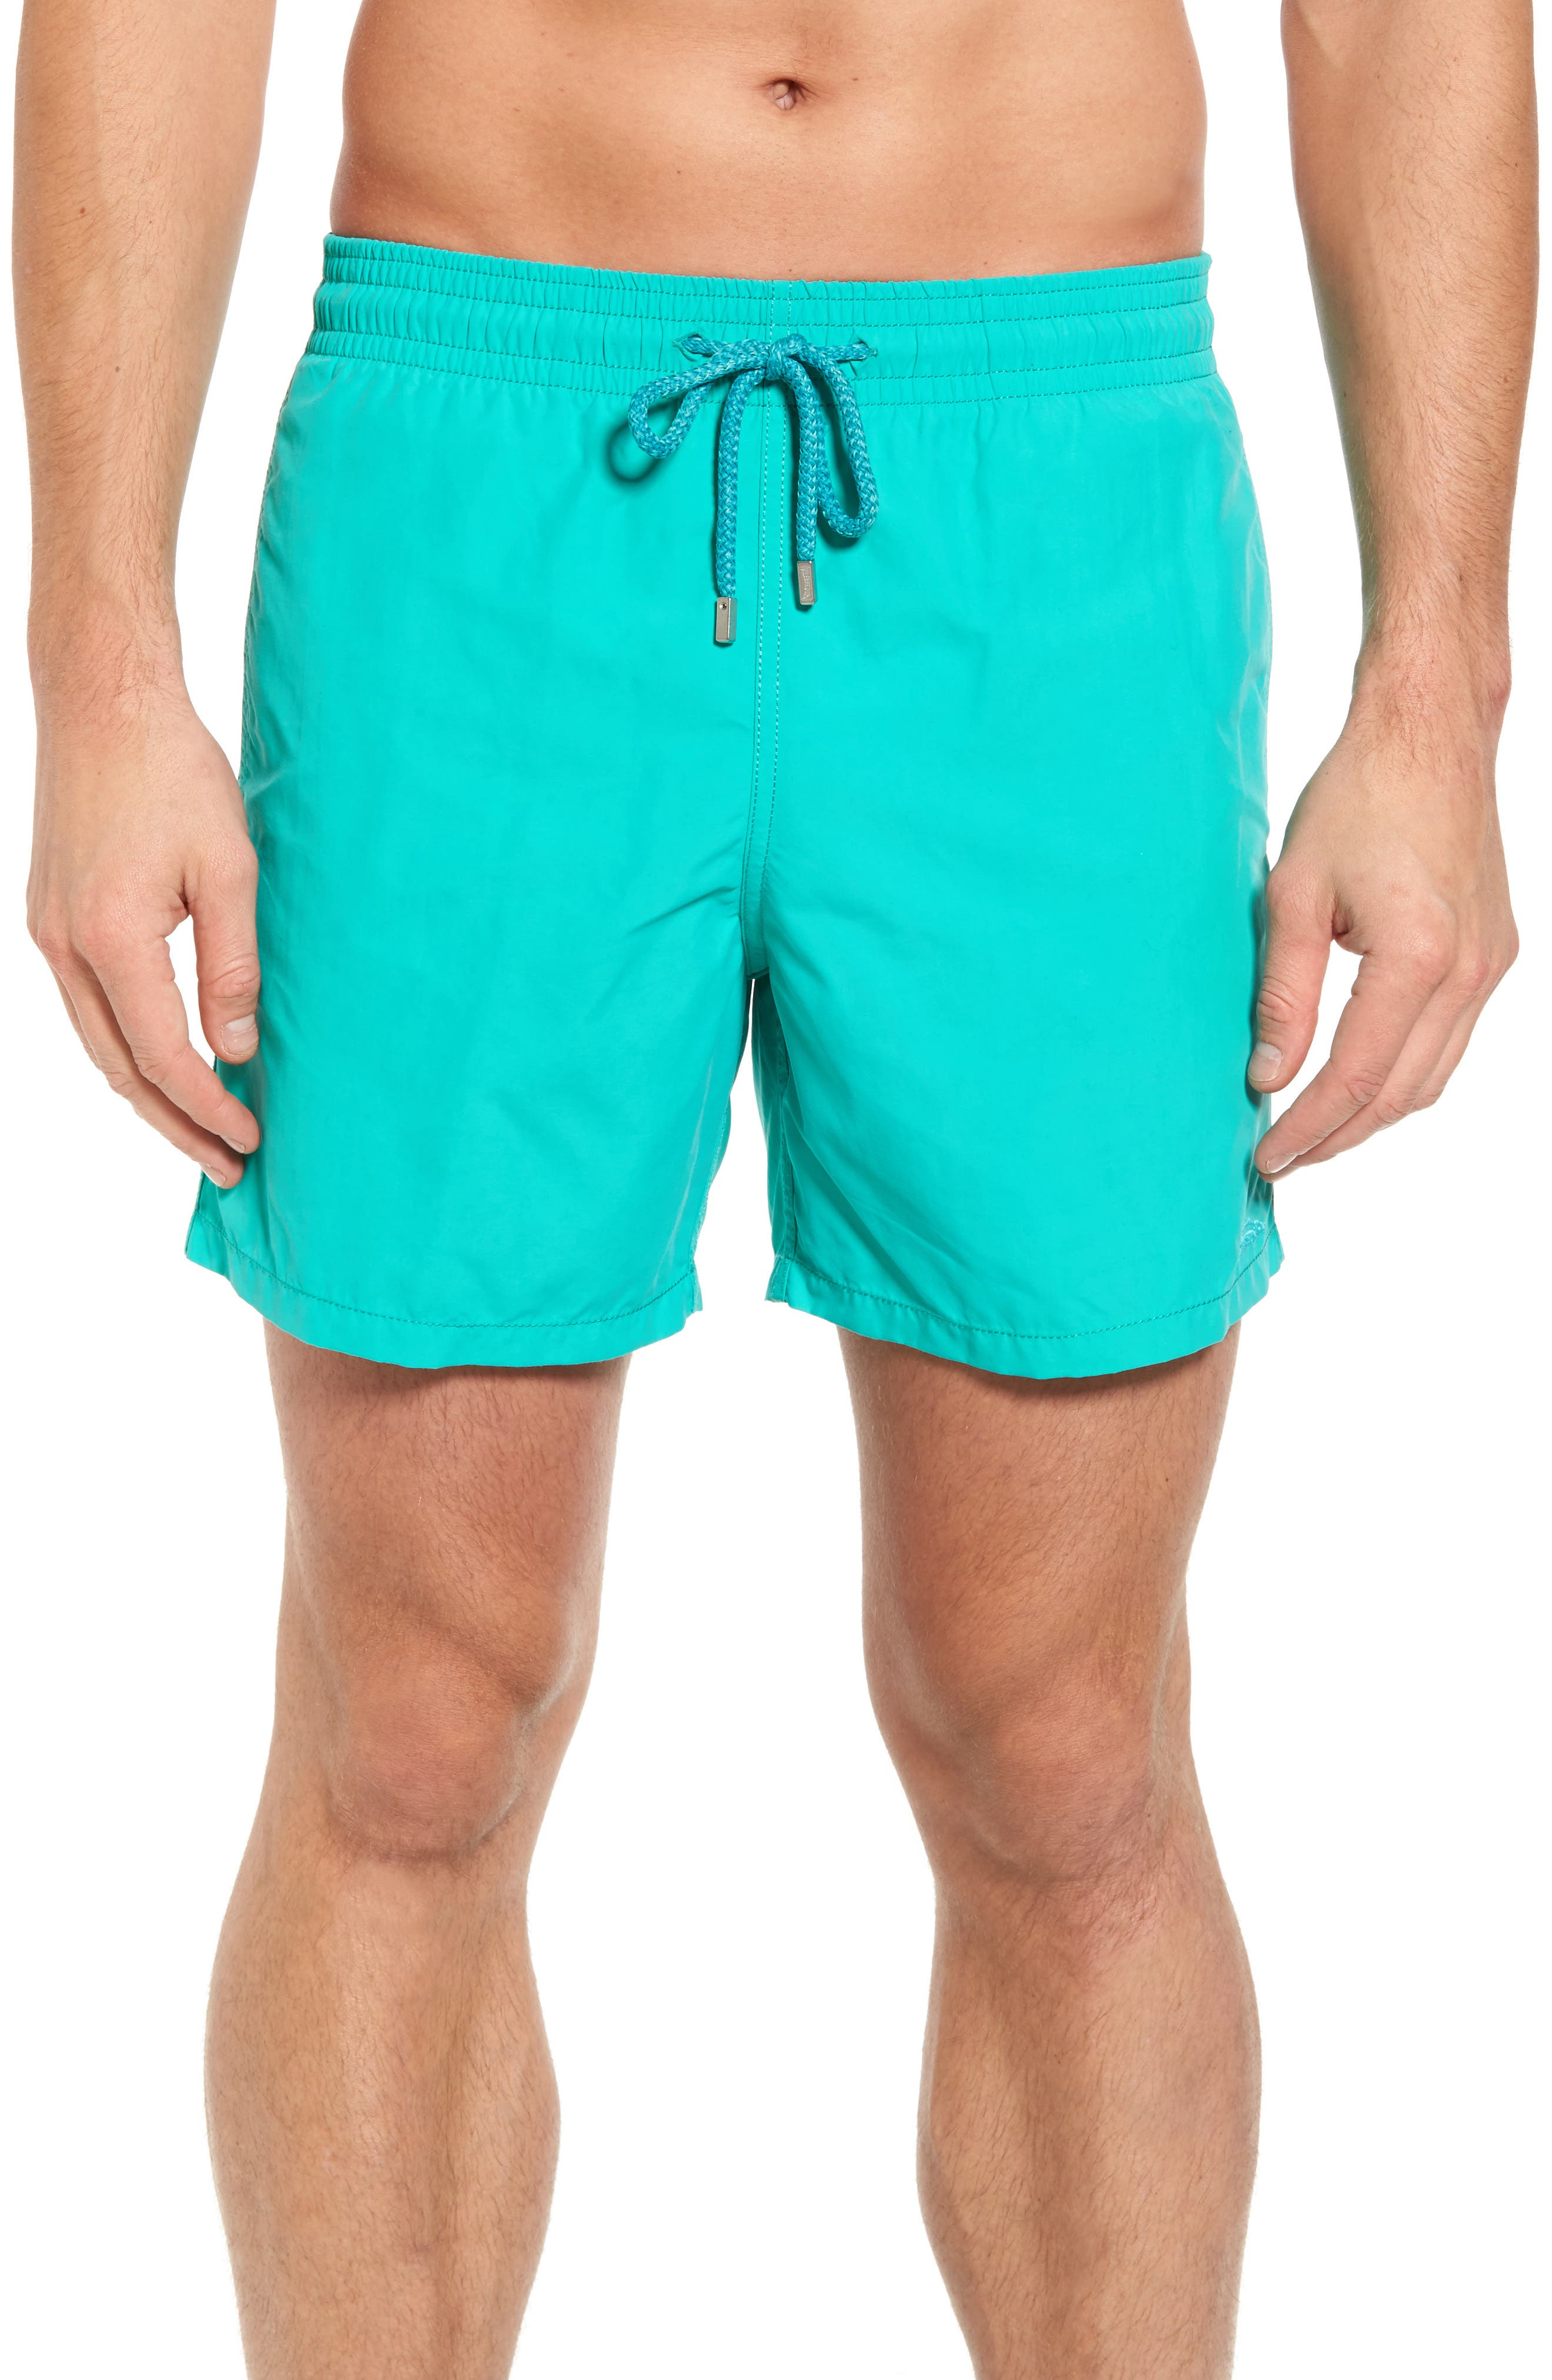 Sardine Water Reactive Swim Trunks,                             Main thumbnail 1, color,                             348